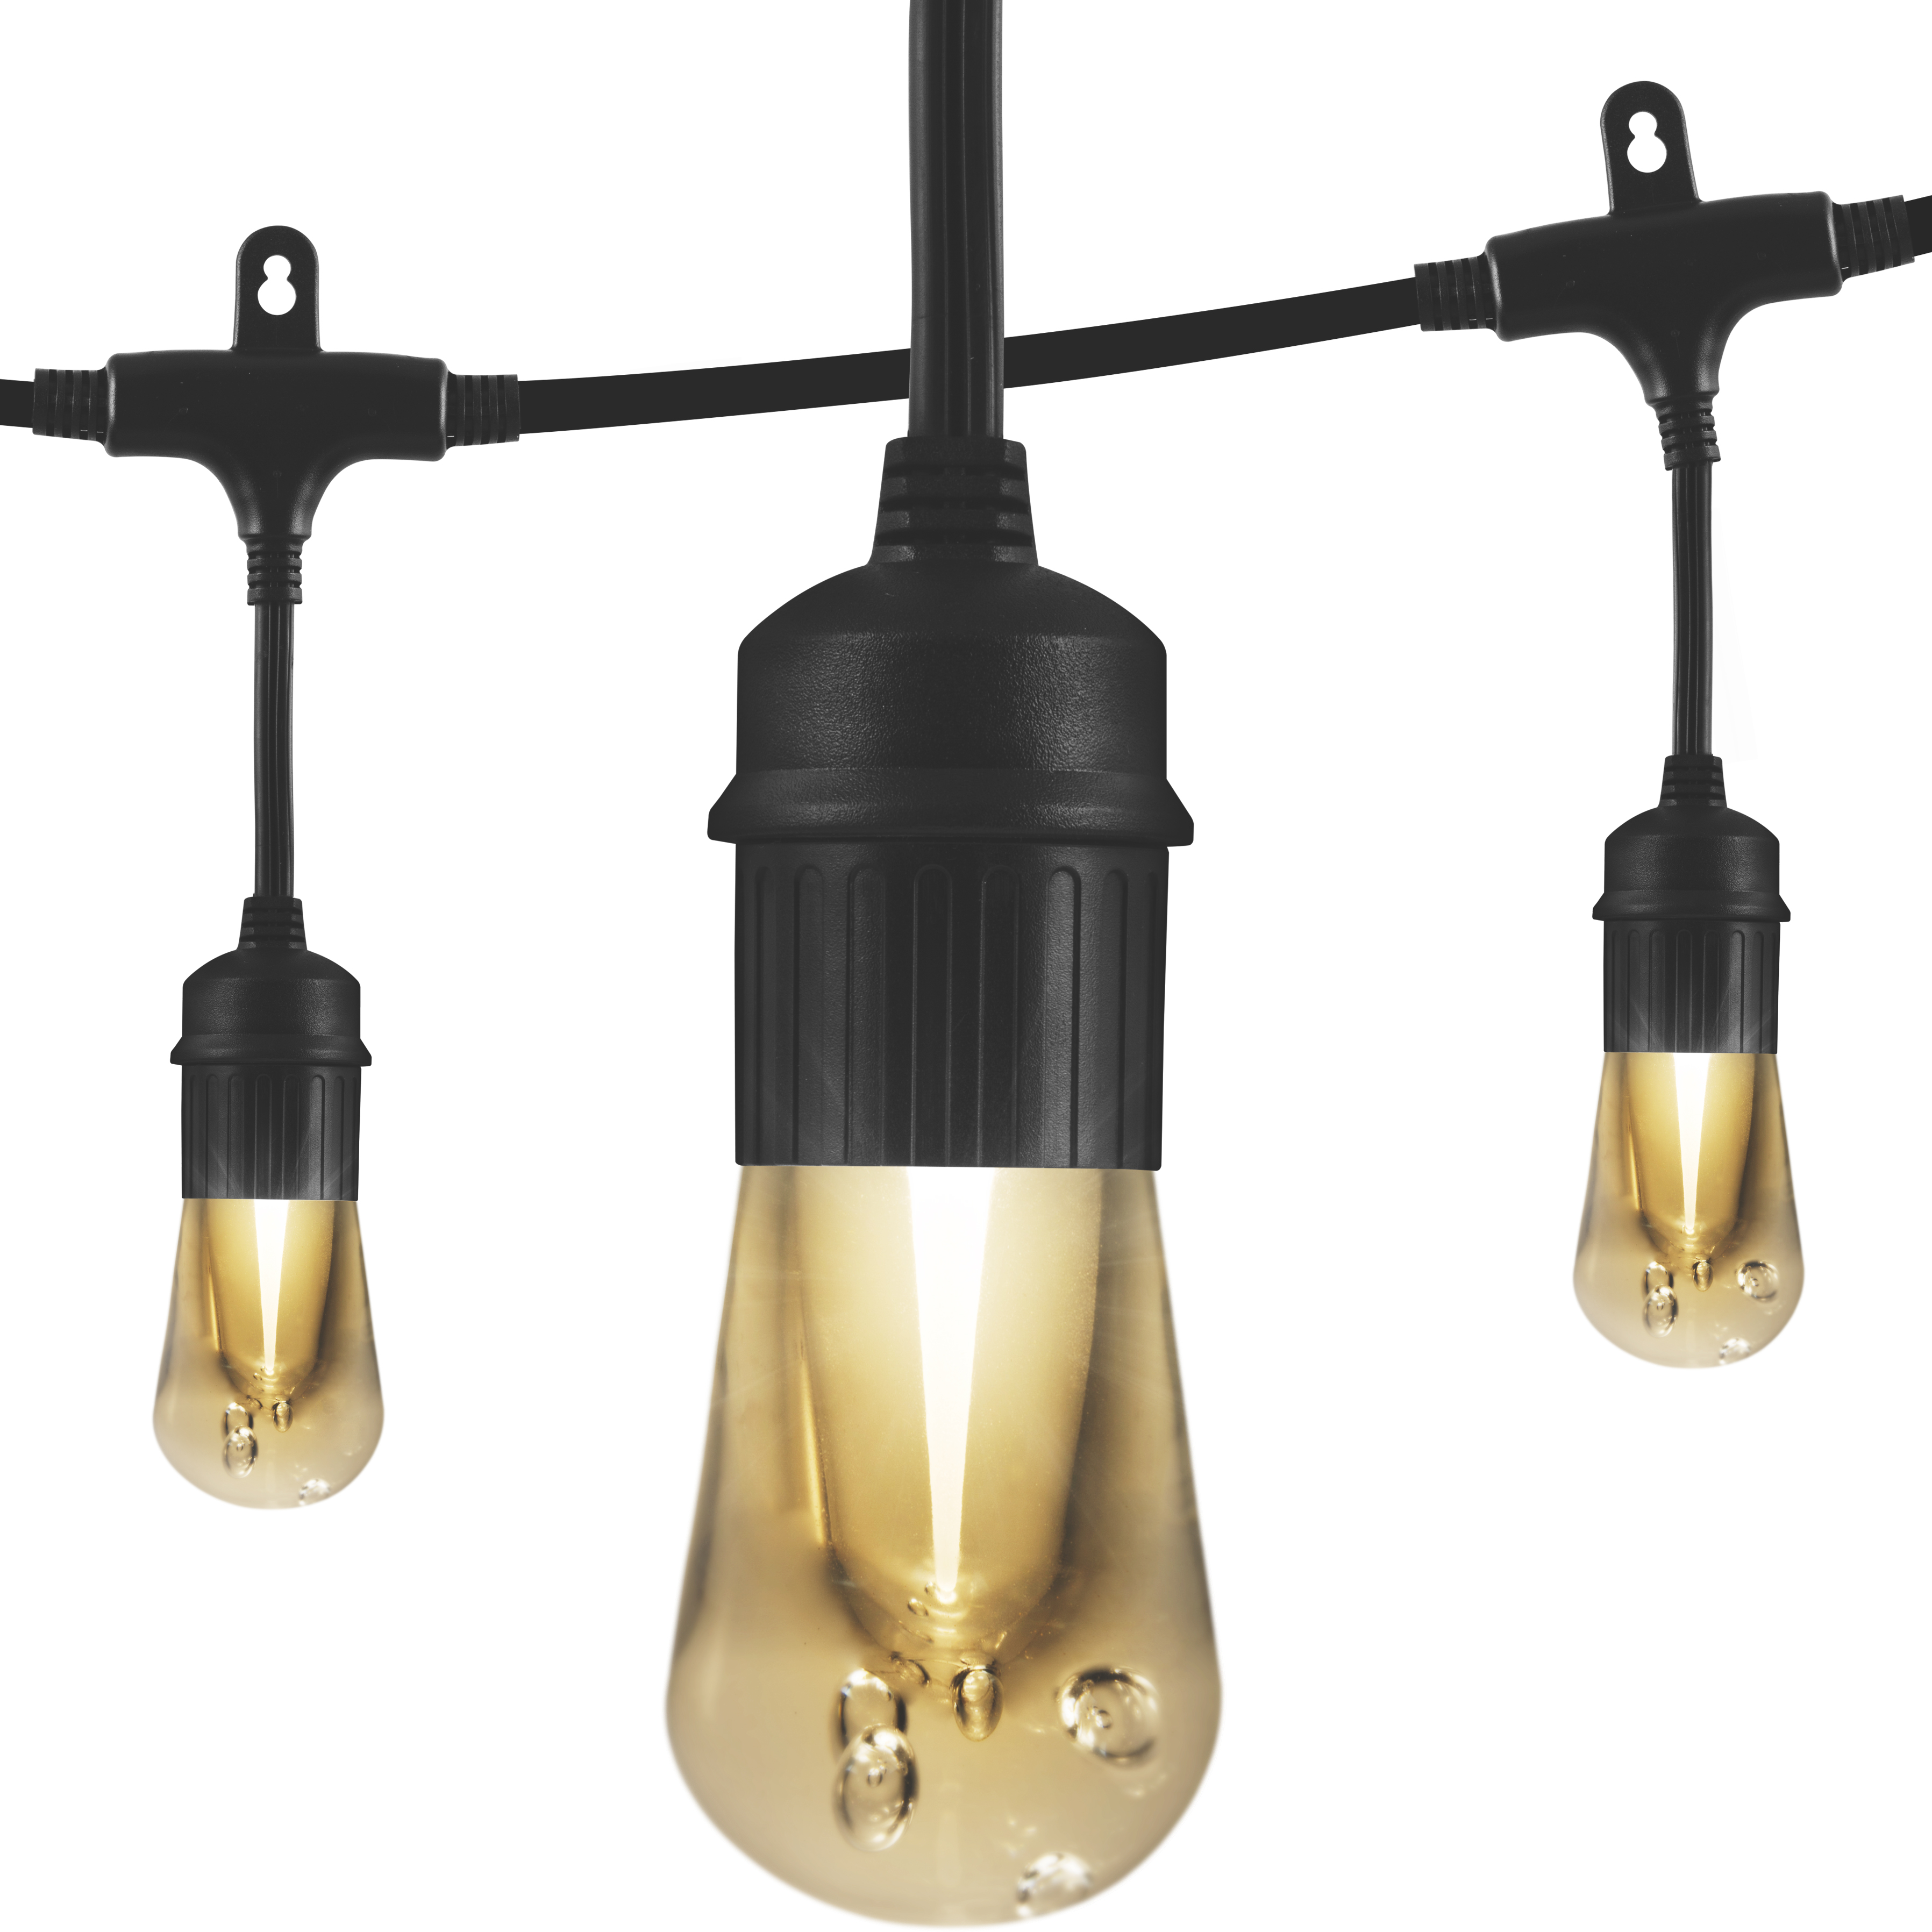 Enbrighten LED Vintage Cafe String Lights, 48-Foot 24 Acrylic Bulbs, 35631